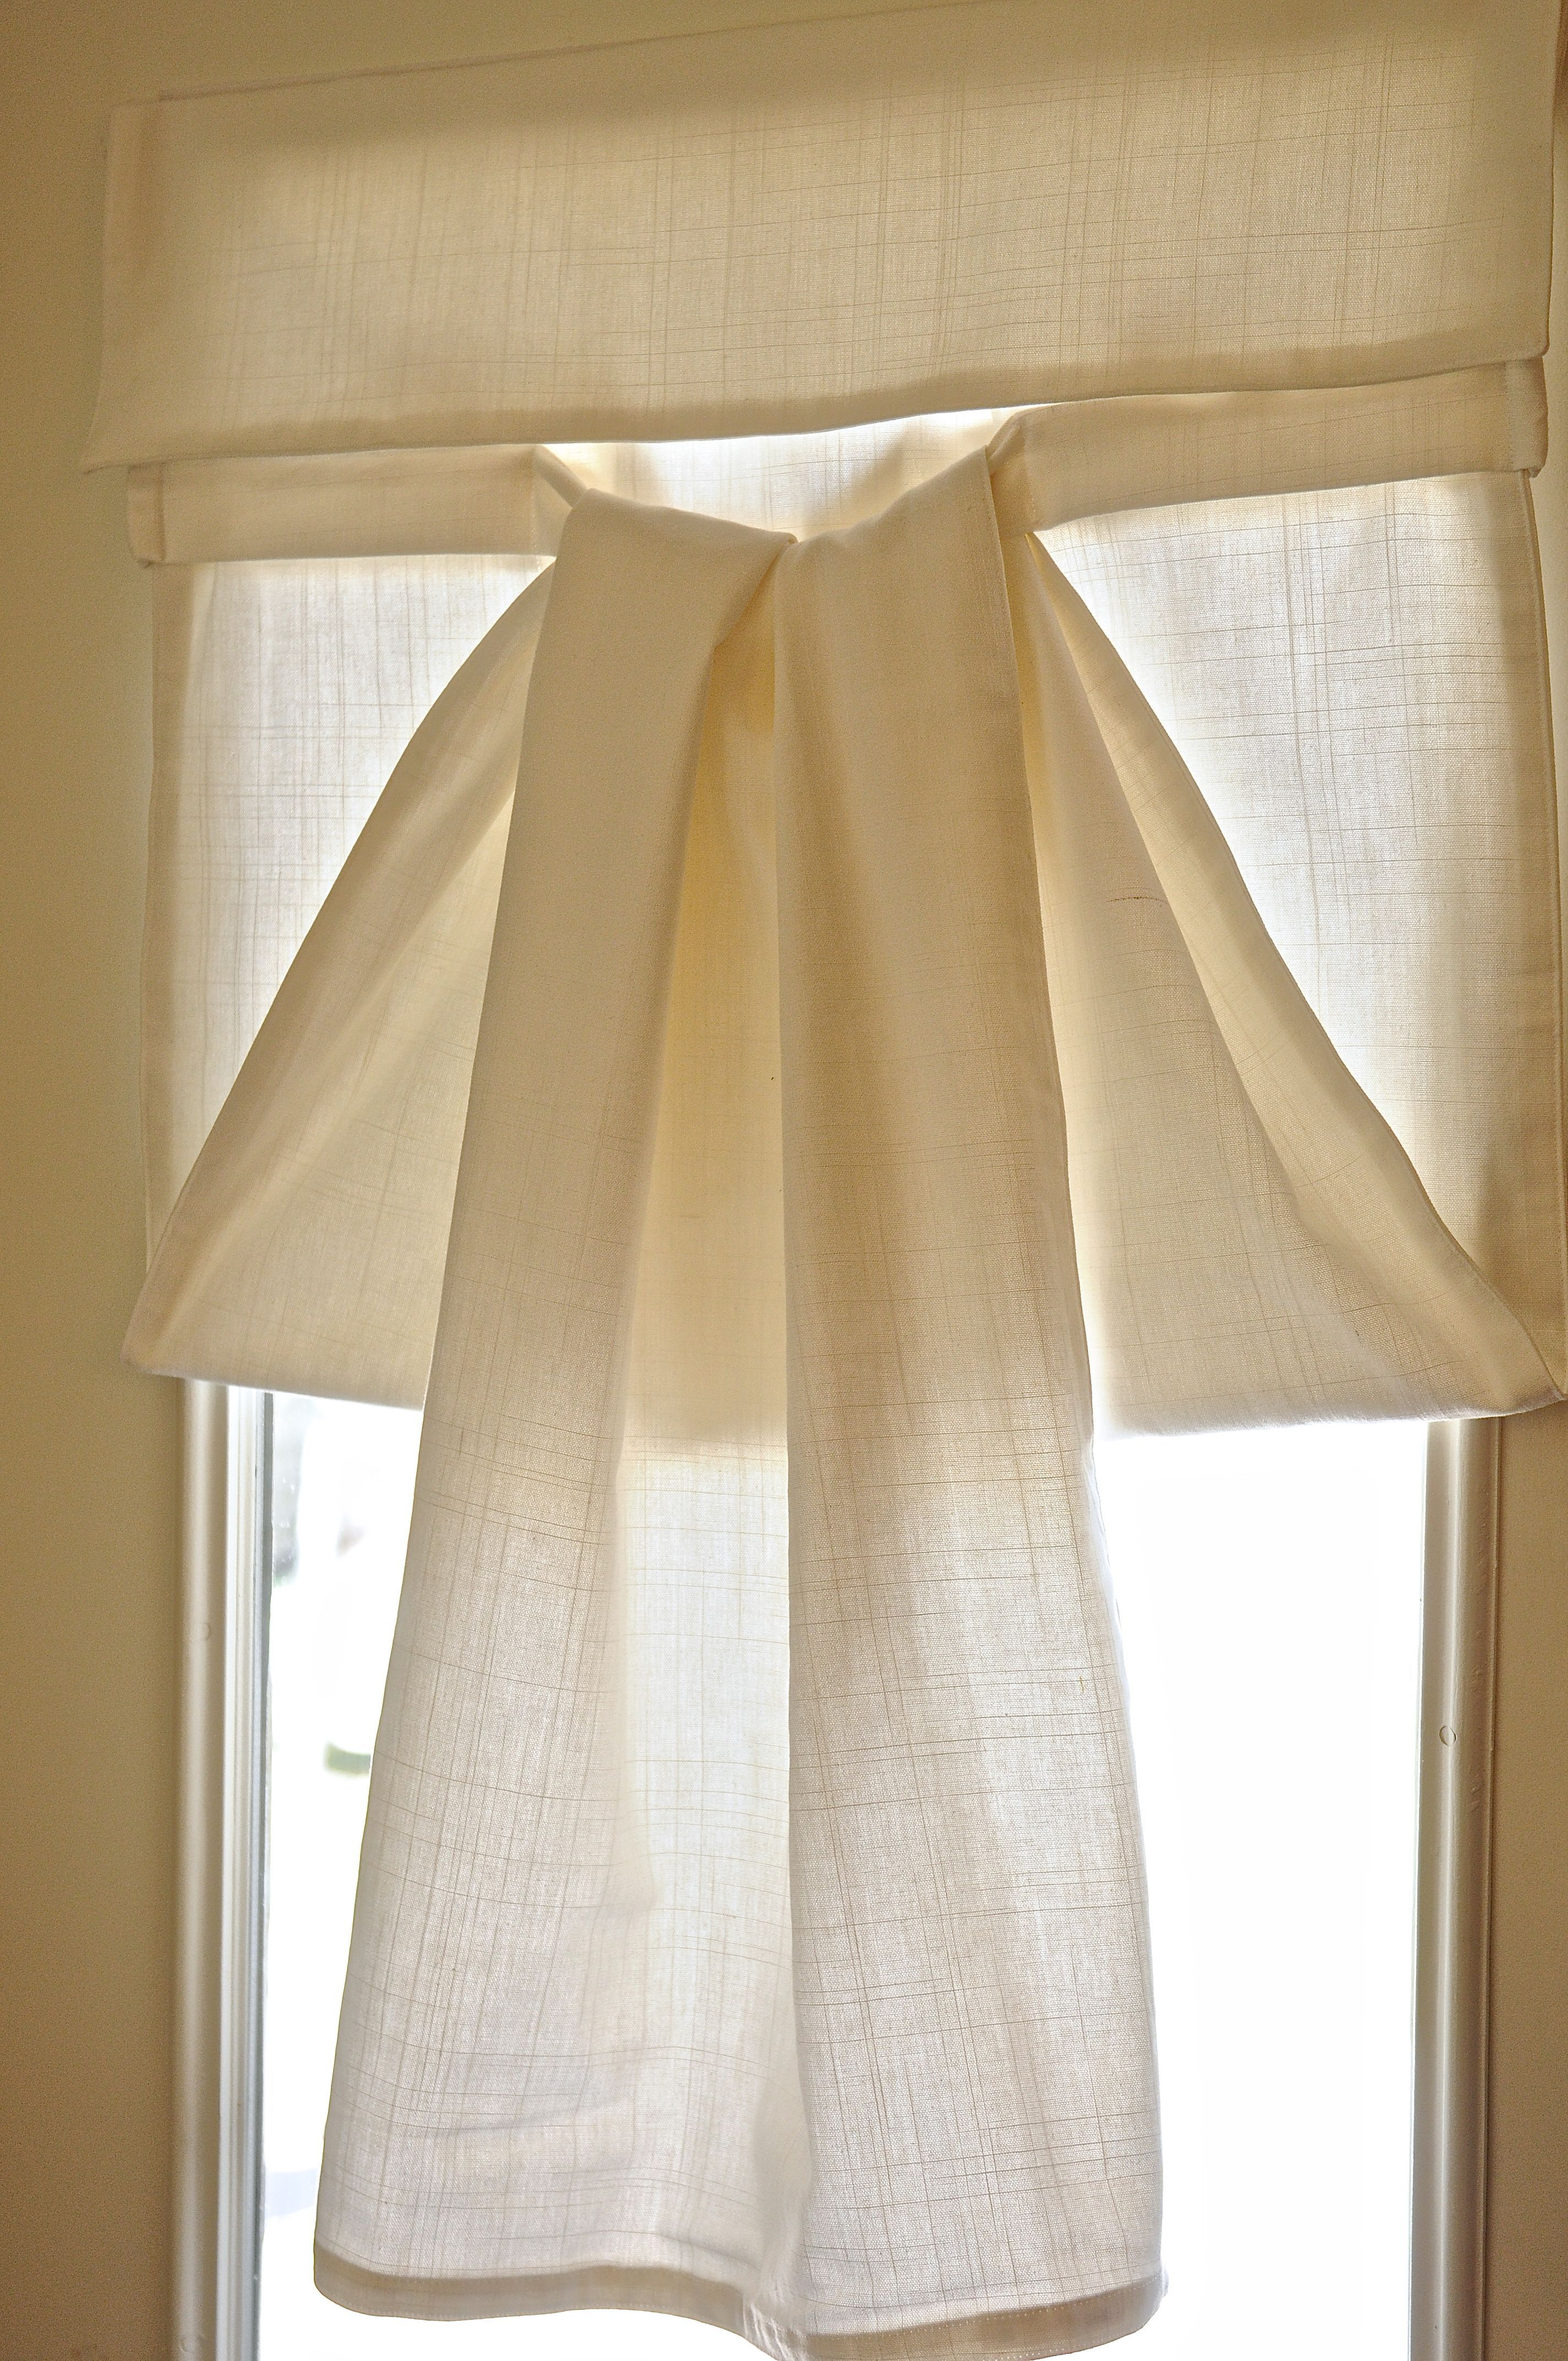 How To Make Rod Pocket Curtains French Door Curtains Door